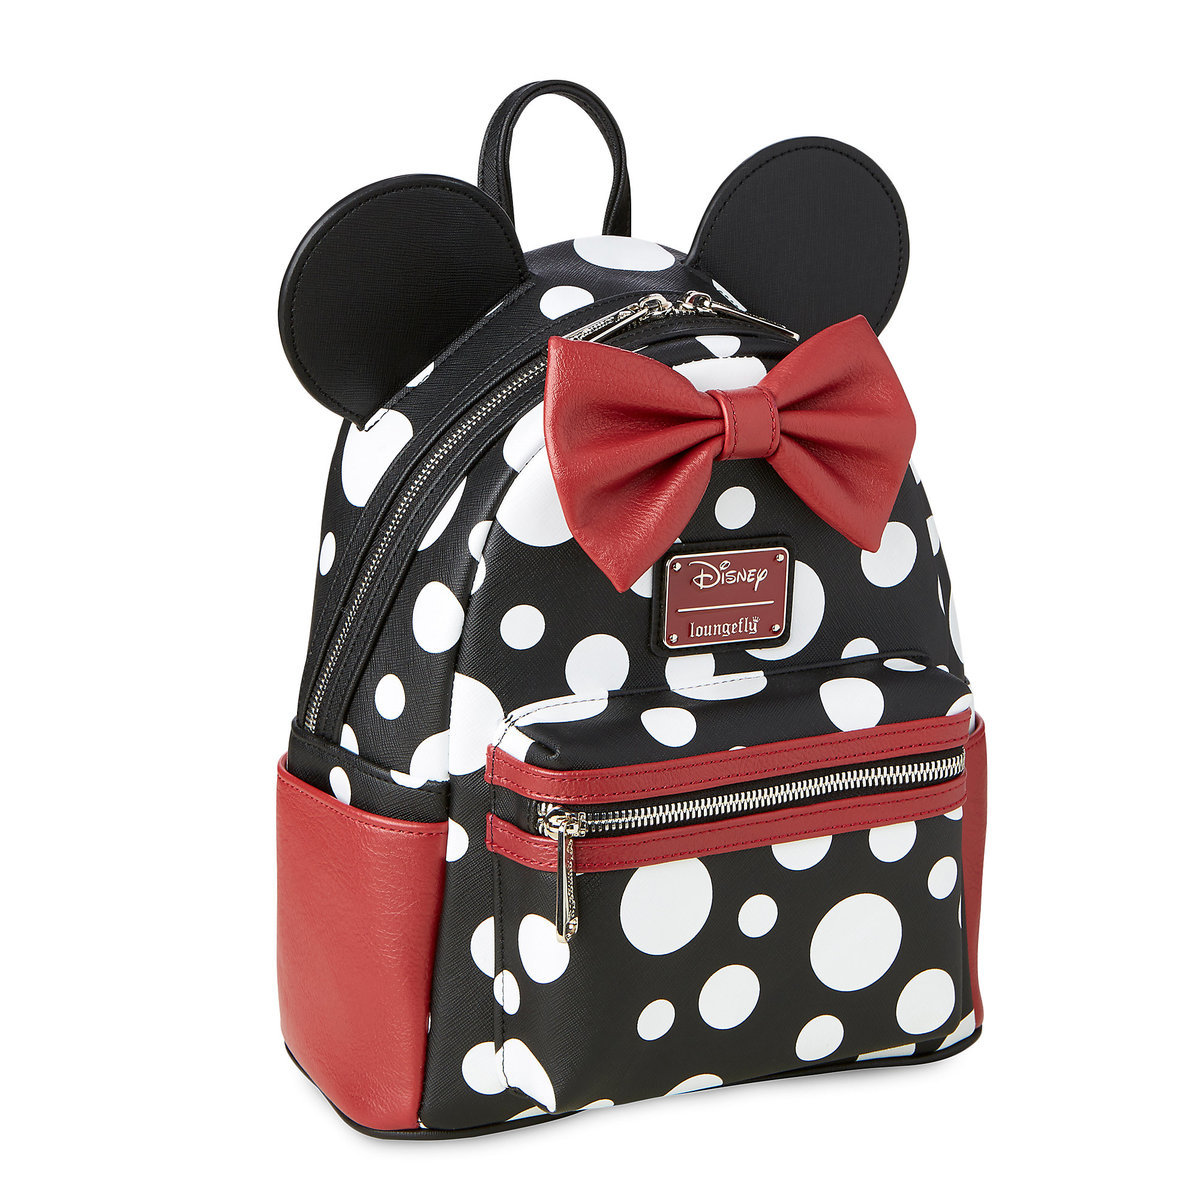 e483aeae6c Product Image of Minnie Mouse Mini Backpack by Loungefly   1